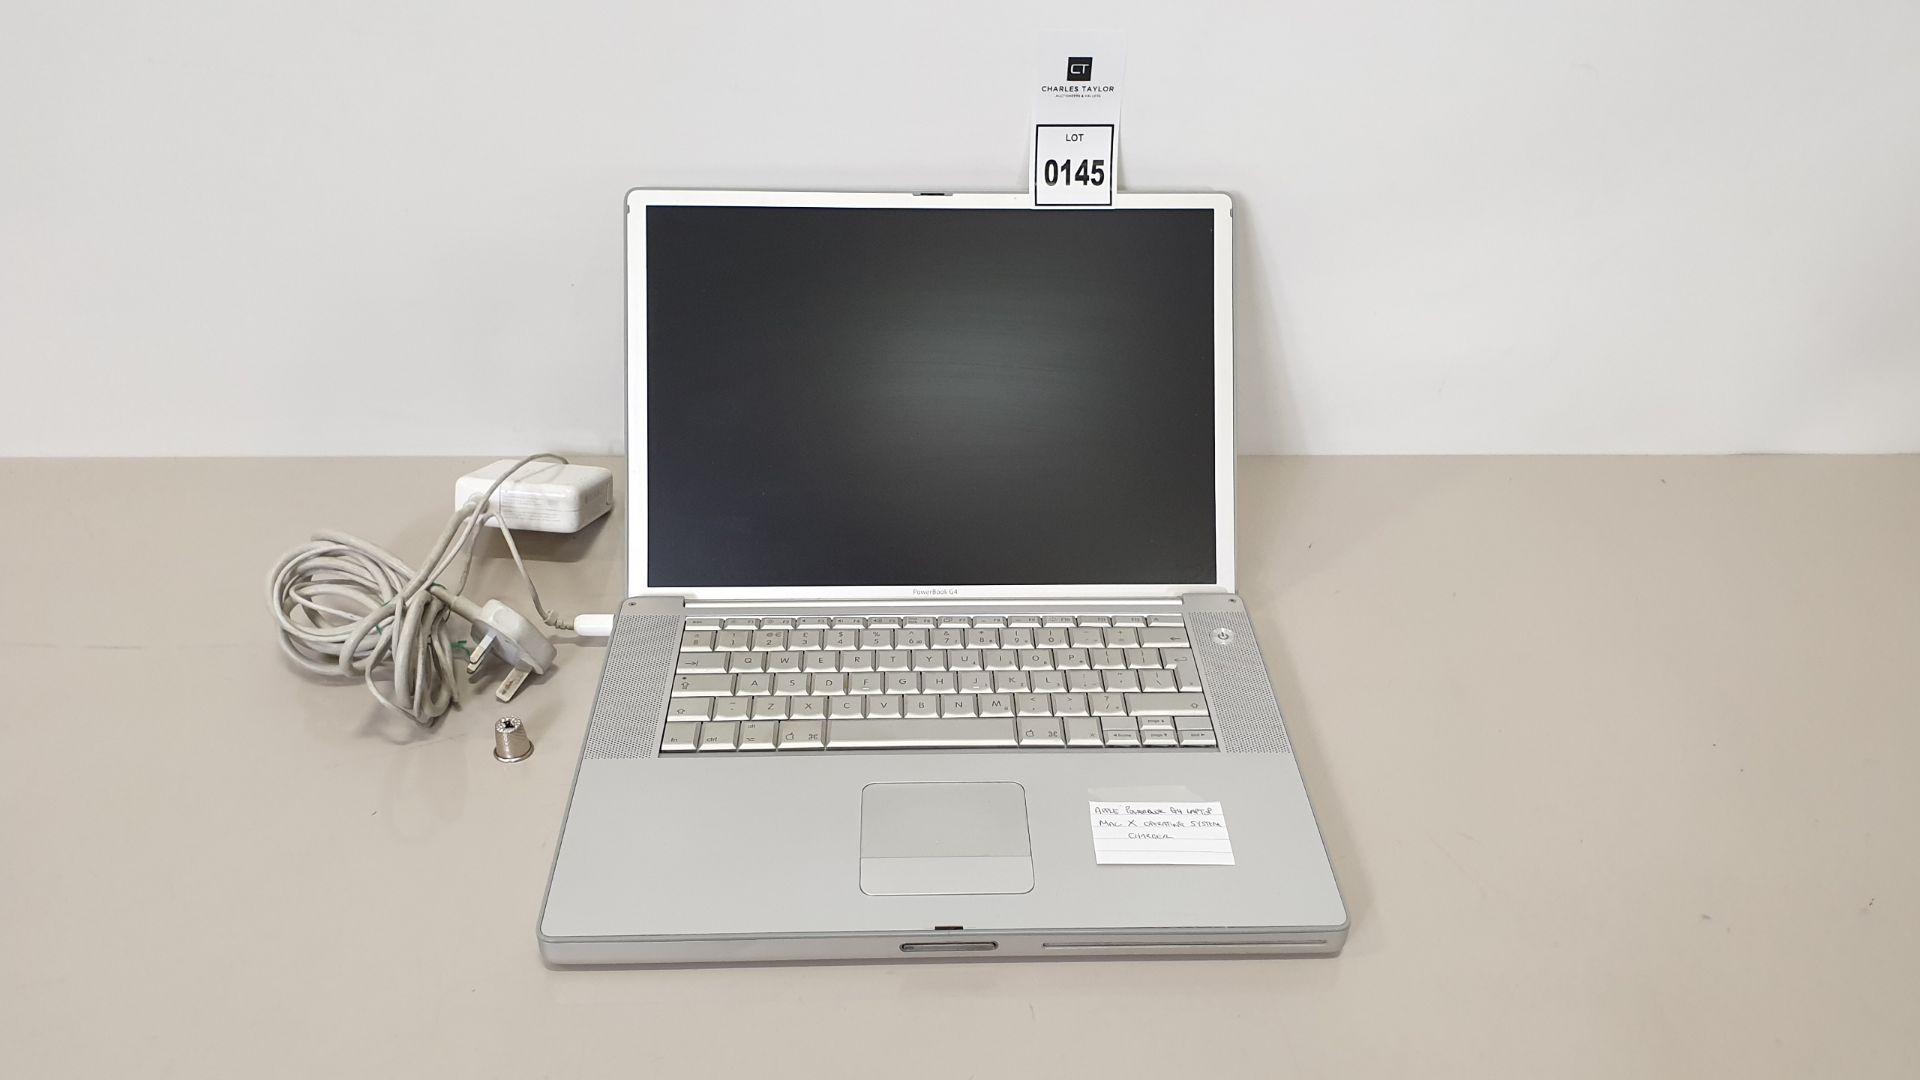 Lot 145 - APPLE POWERBOOK G4 LAPTOP MAC X OPERATING SYSTEM - WITH CHARGER